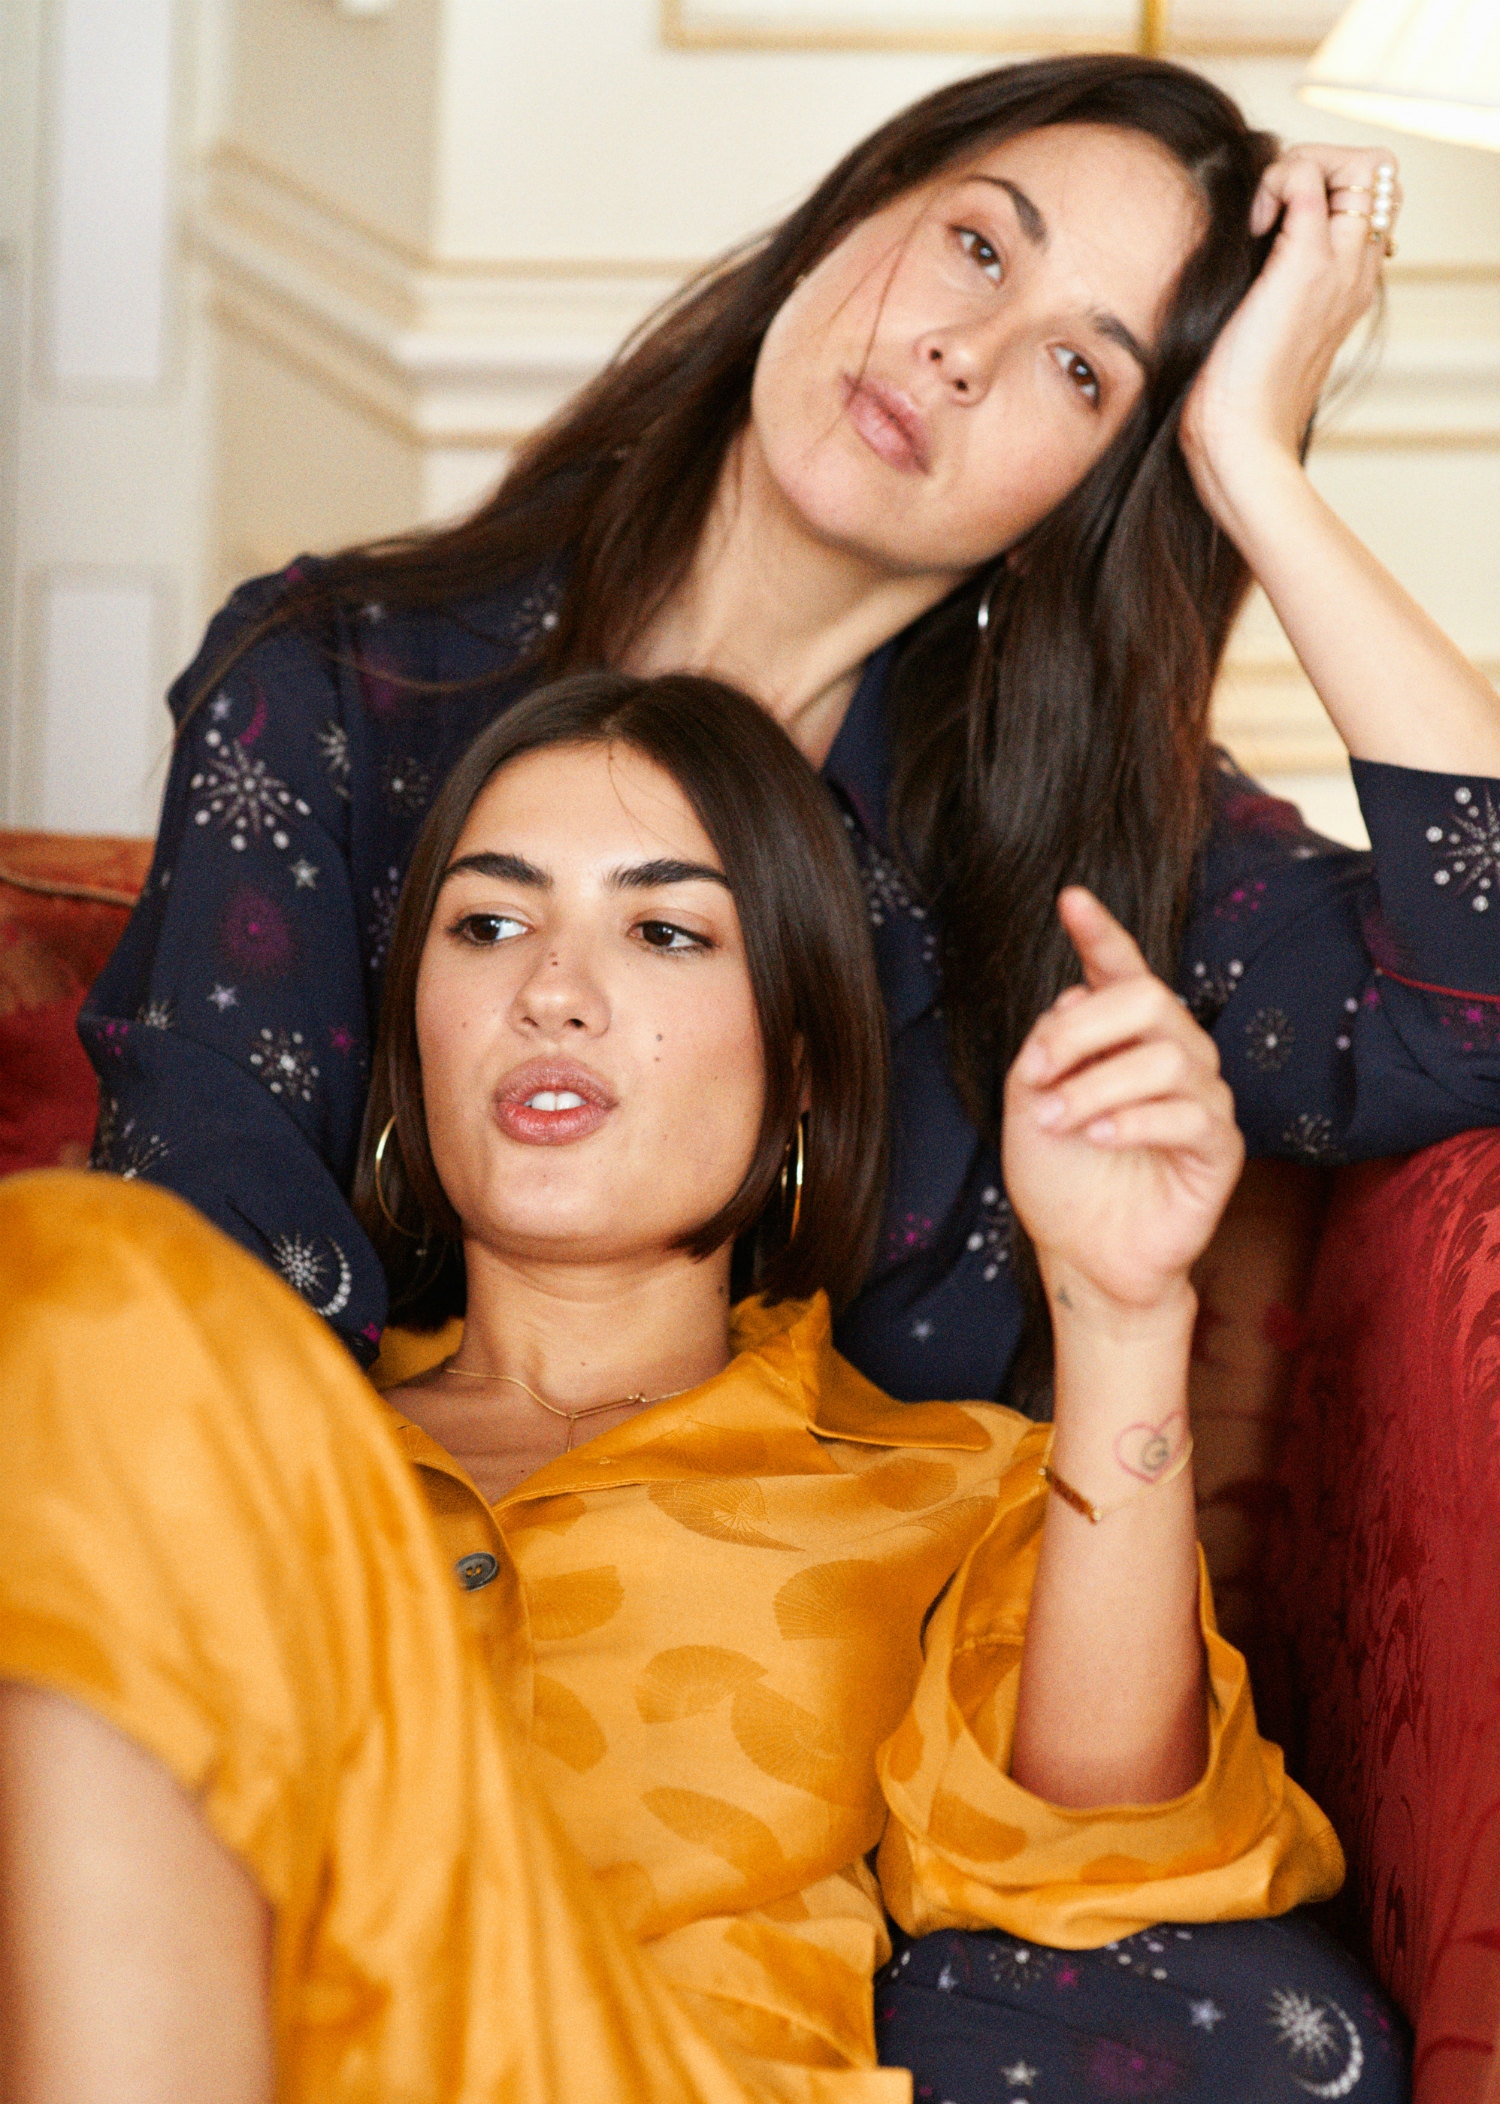 Patricia Manfield Renata di Pace & Other Stories(14)